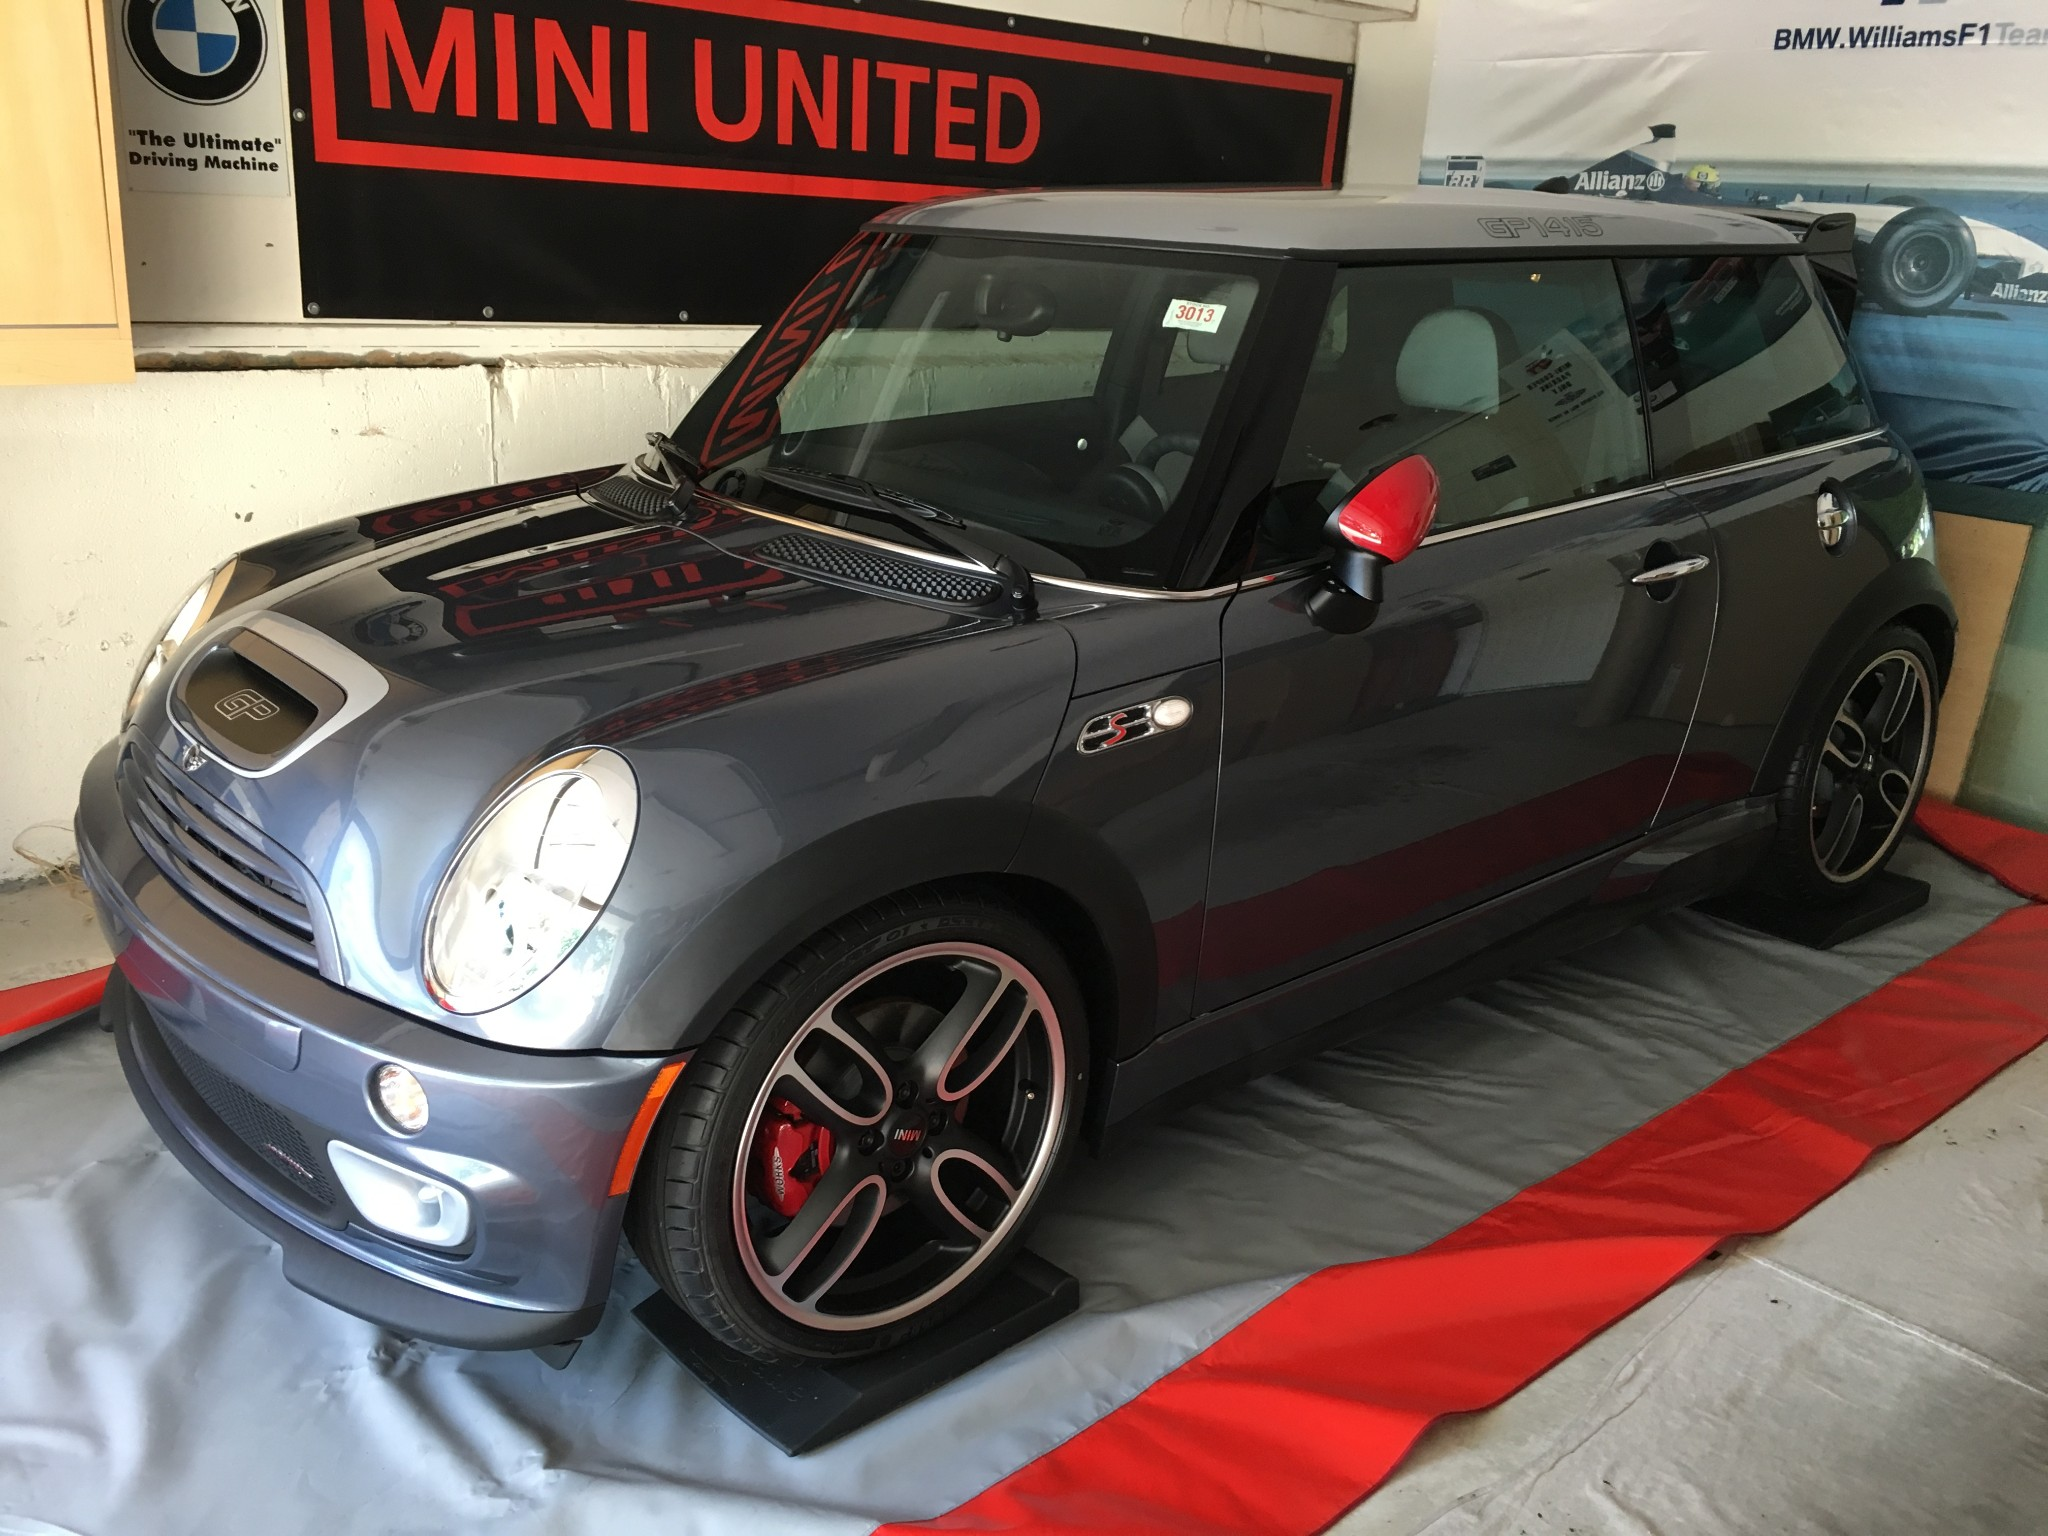 A Brand New 2006 Mini Jcw Gp Is For Sale Motoringfile